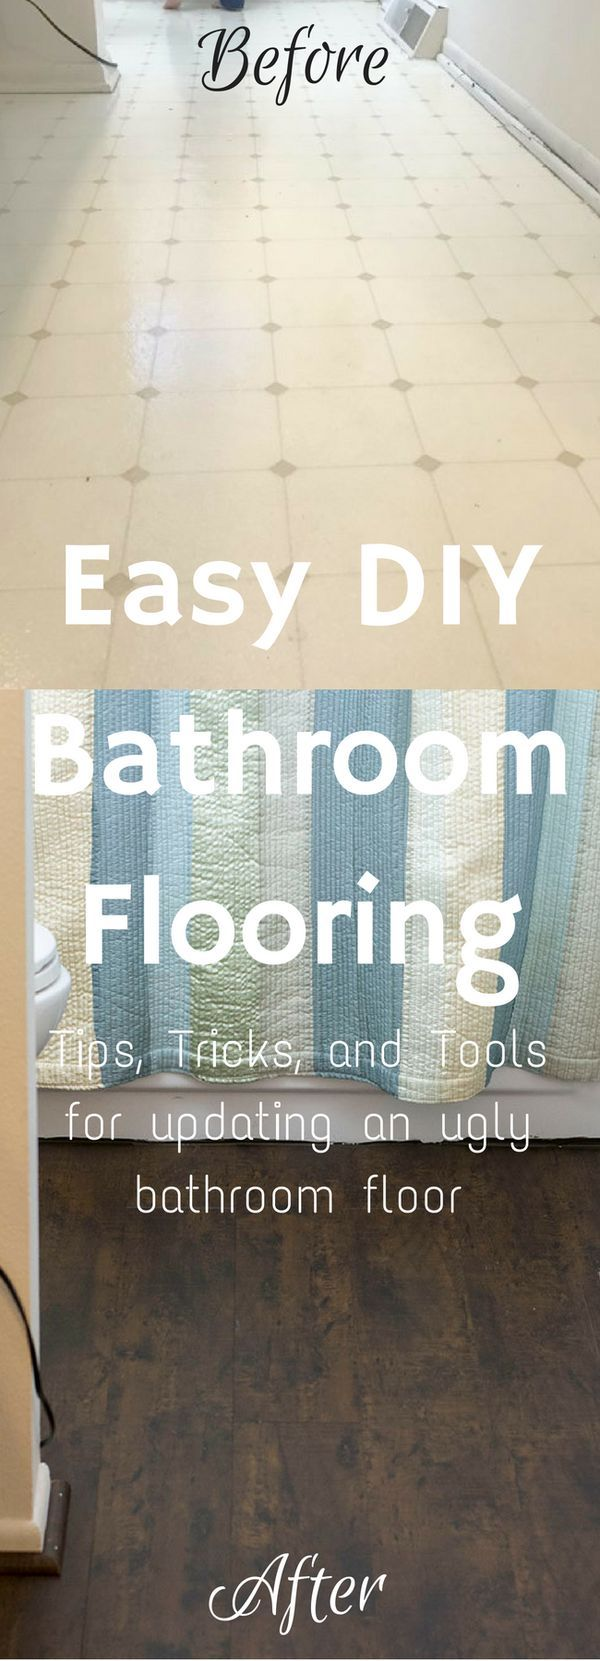 best 25+ diy bathroom remodel ideas on pinterest